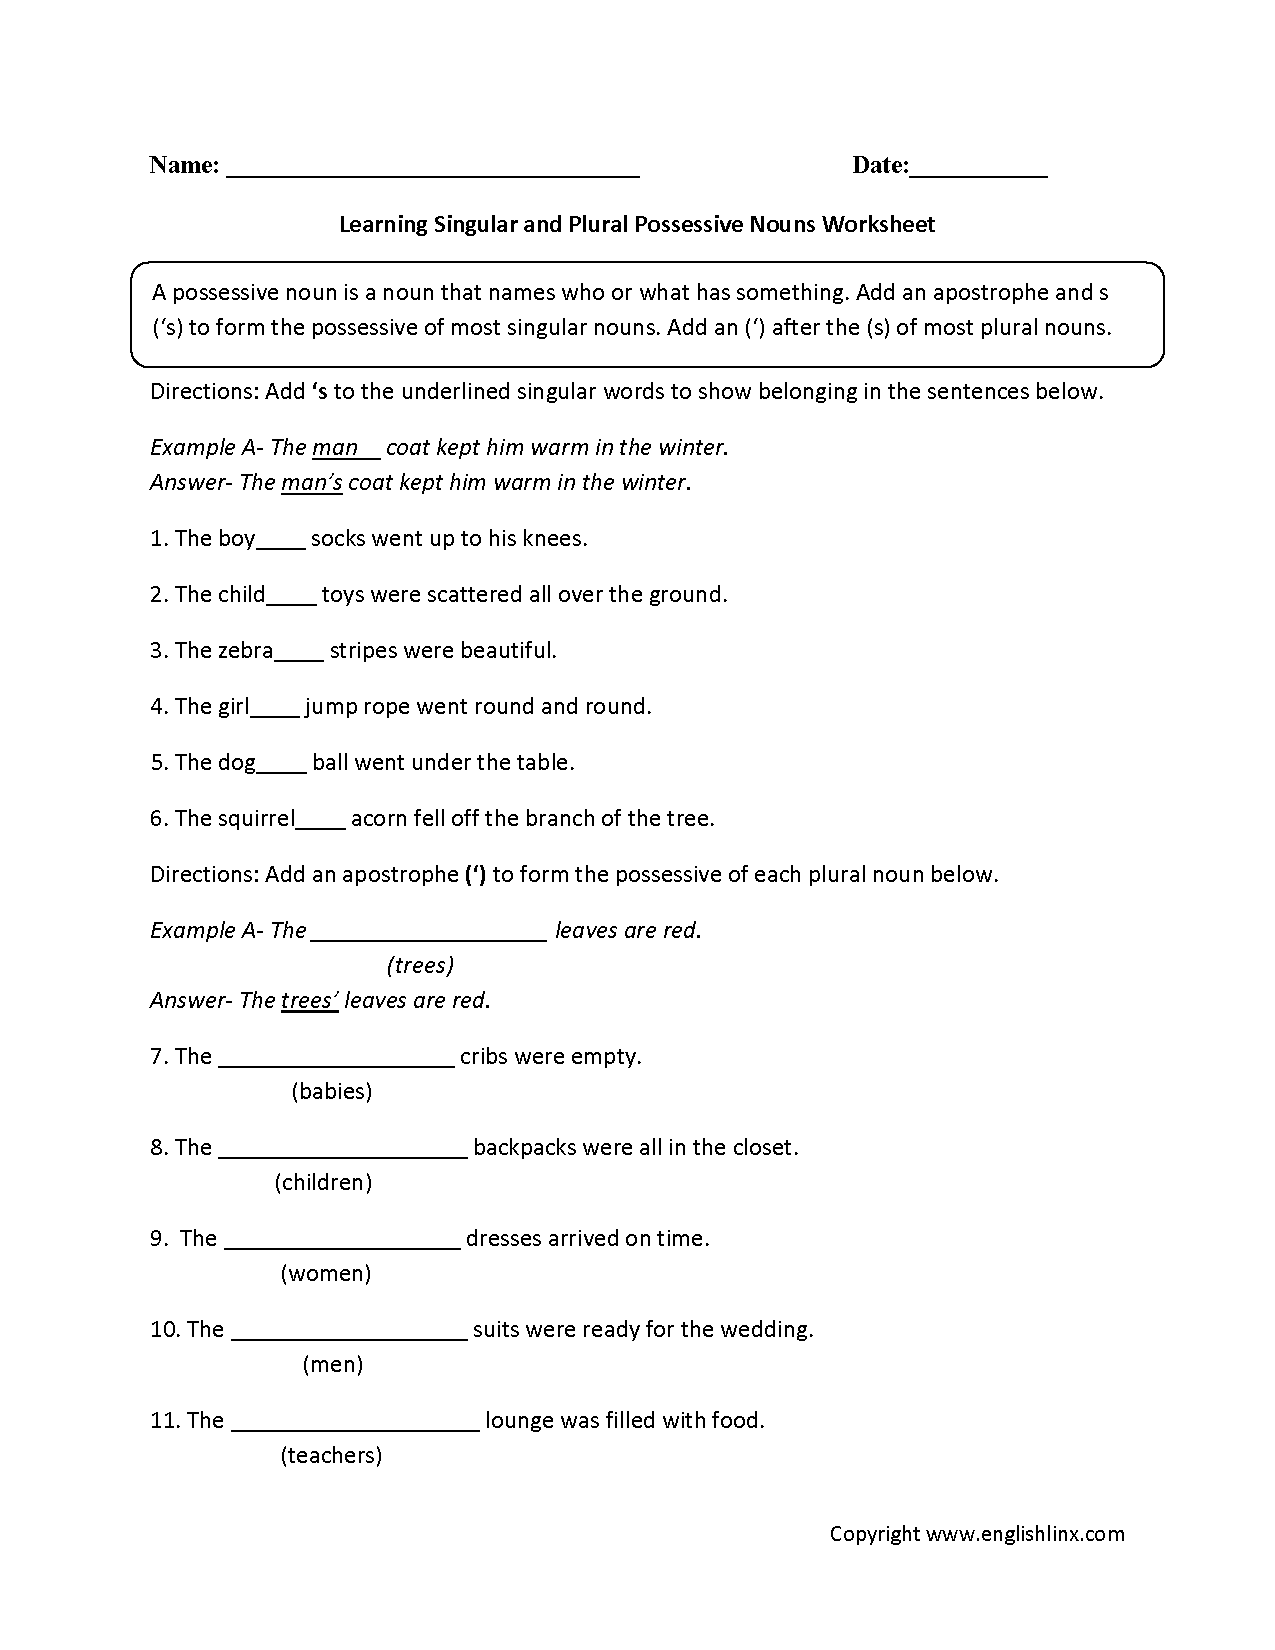 Worksheets Plural Possessive Nouns Worksheets nouns worksheets possessive grades 9 12 worksheets